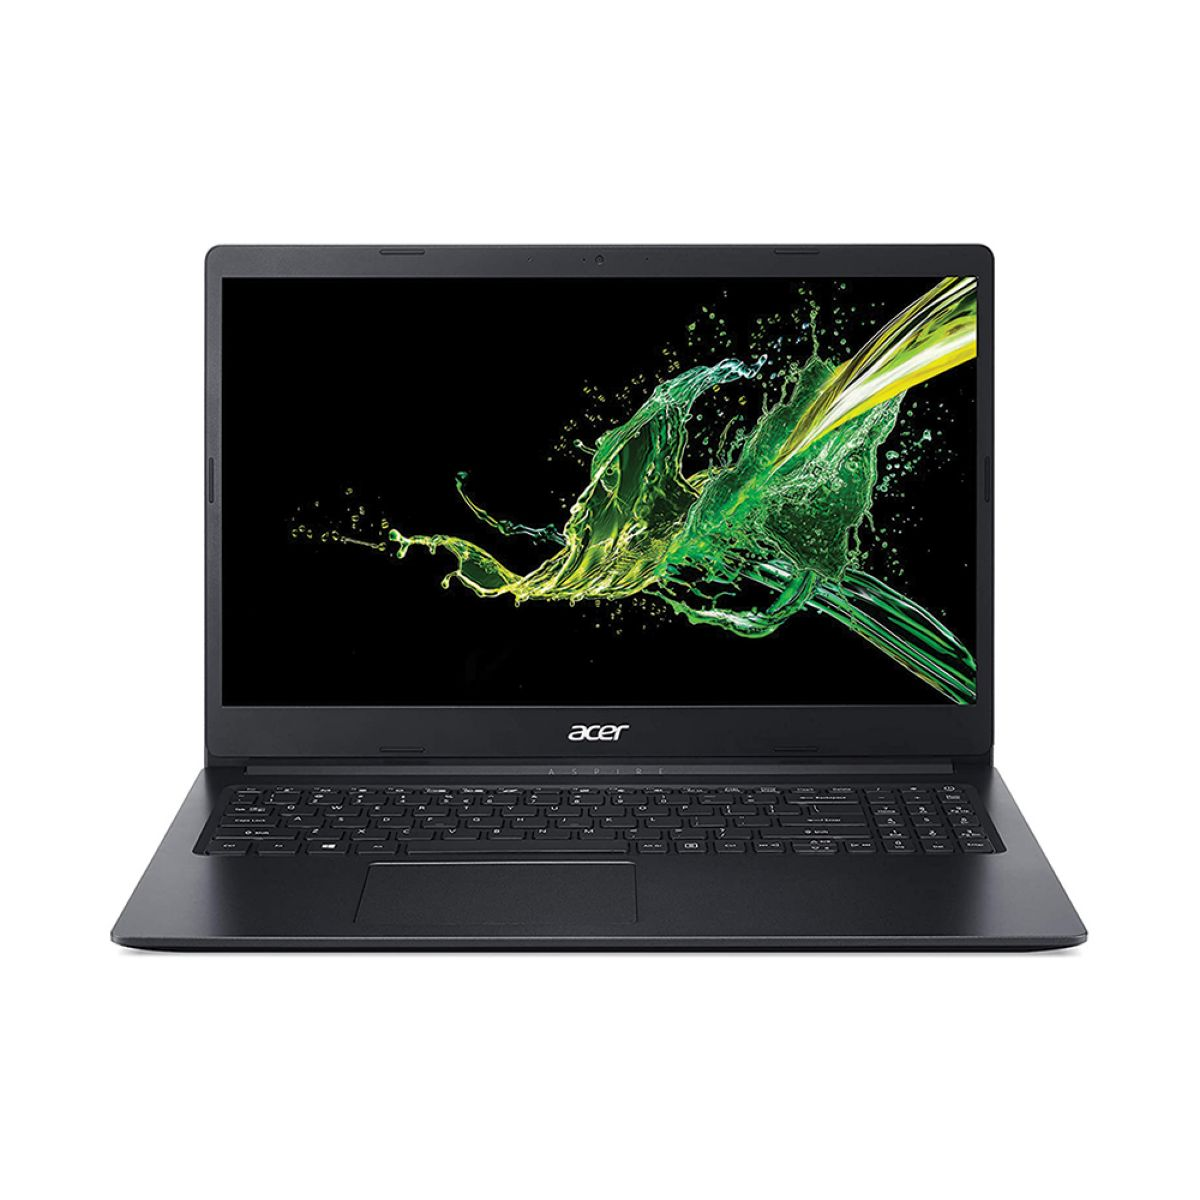 Notebook Acer A315-56-37ws Core I3-1005g1 Linux